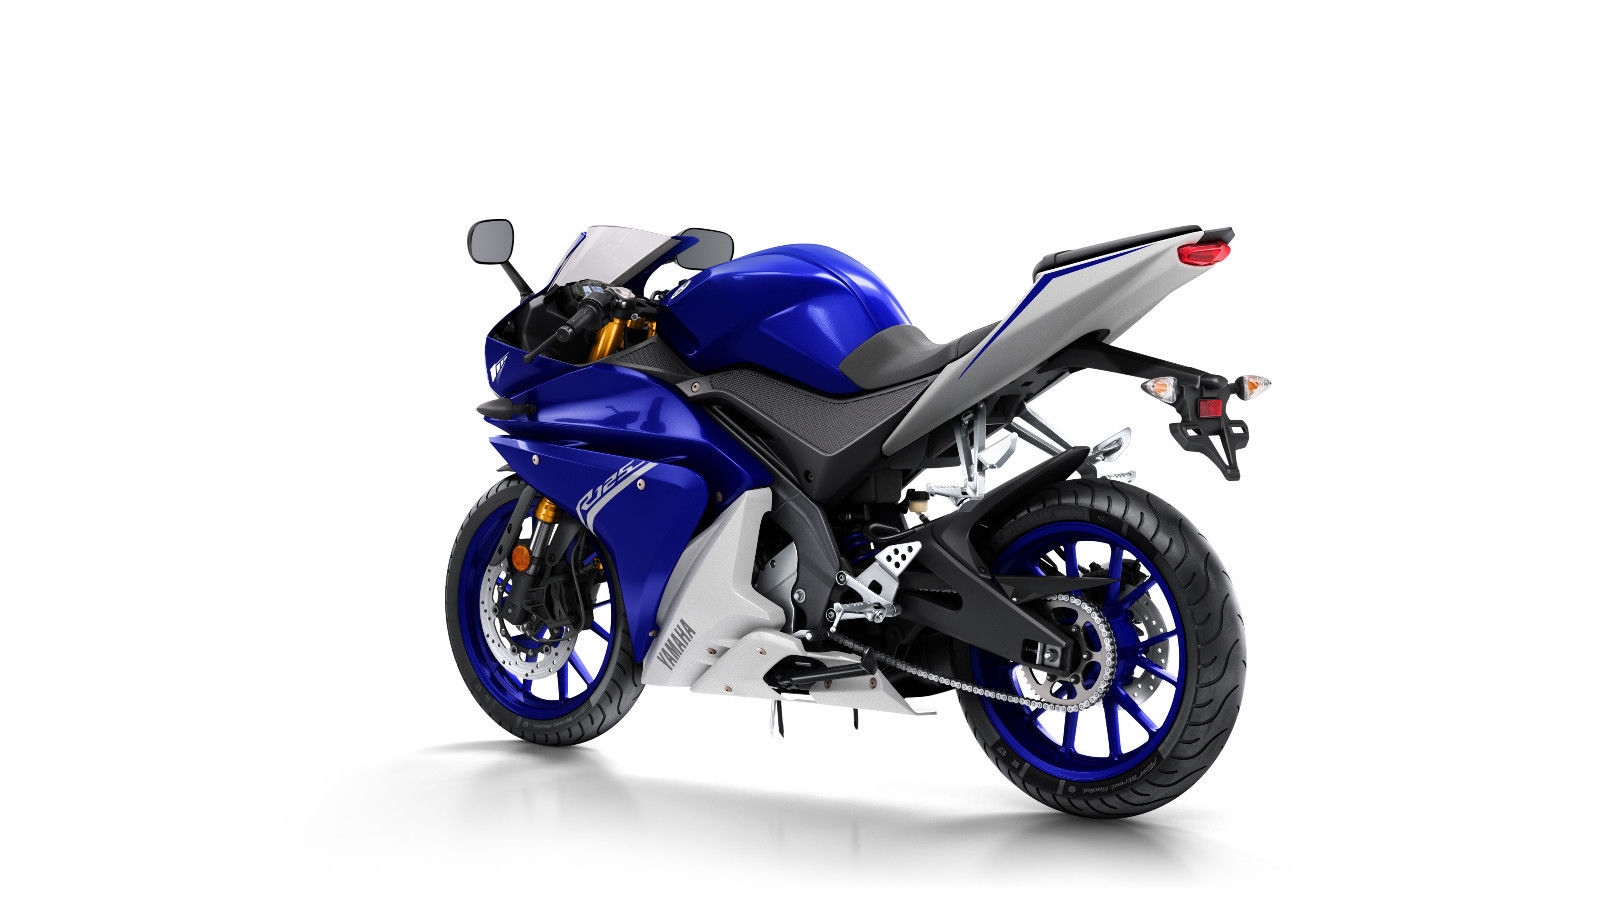 MT-07 ABS Modell 2018 SOFORT LIEFERBAR!